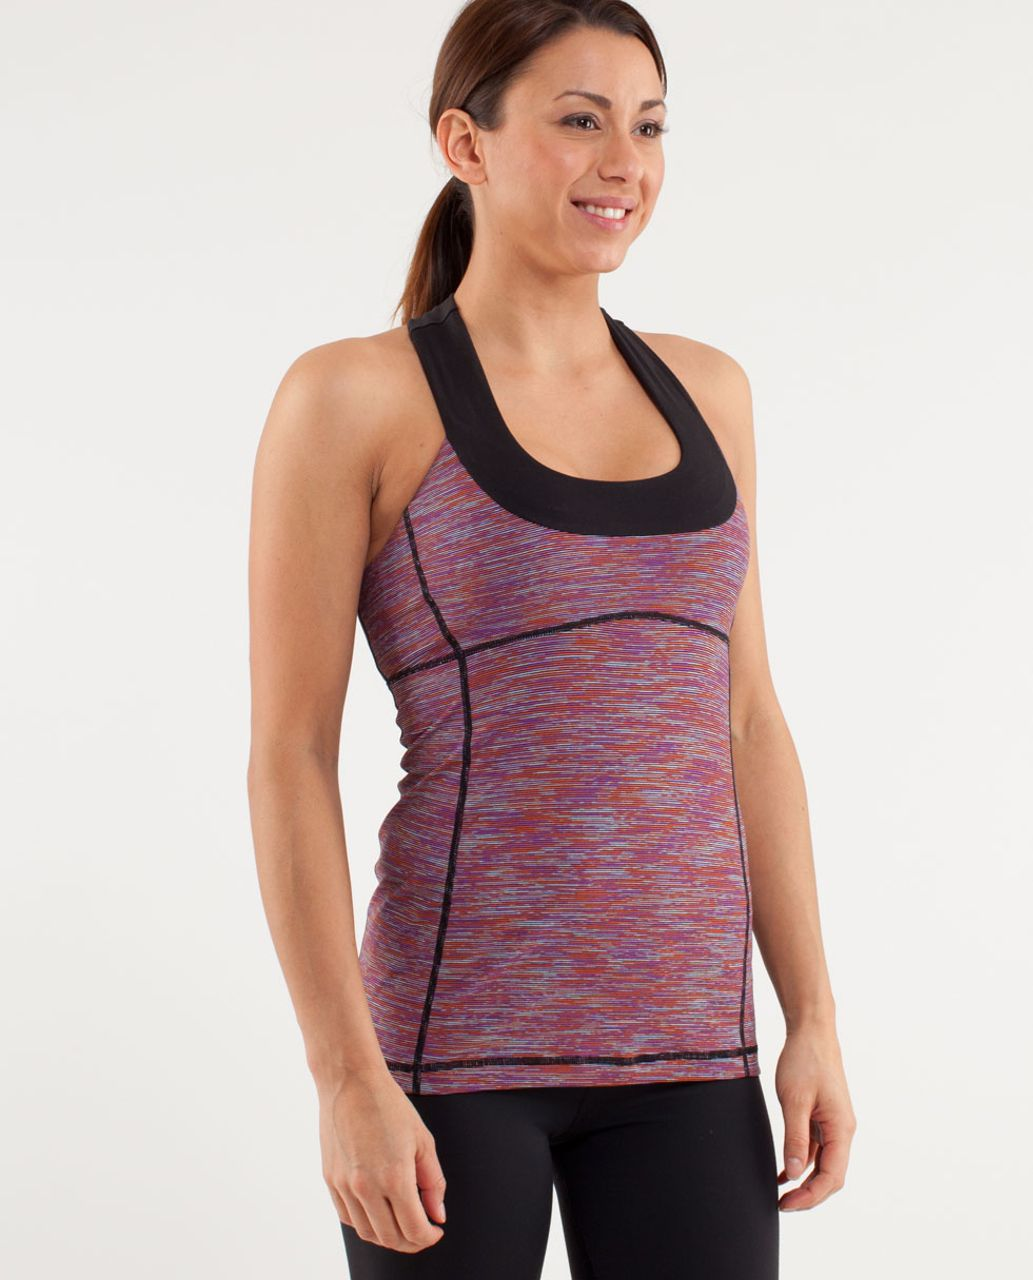 Lululemon Scoop Neck Tank - Wee Are From Space Black March Multi /  Black